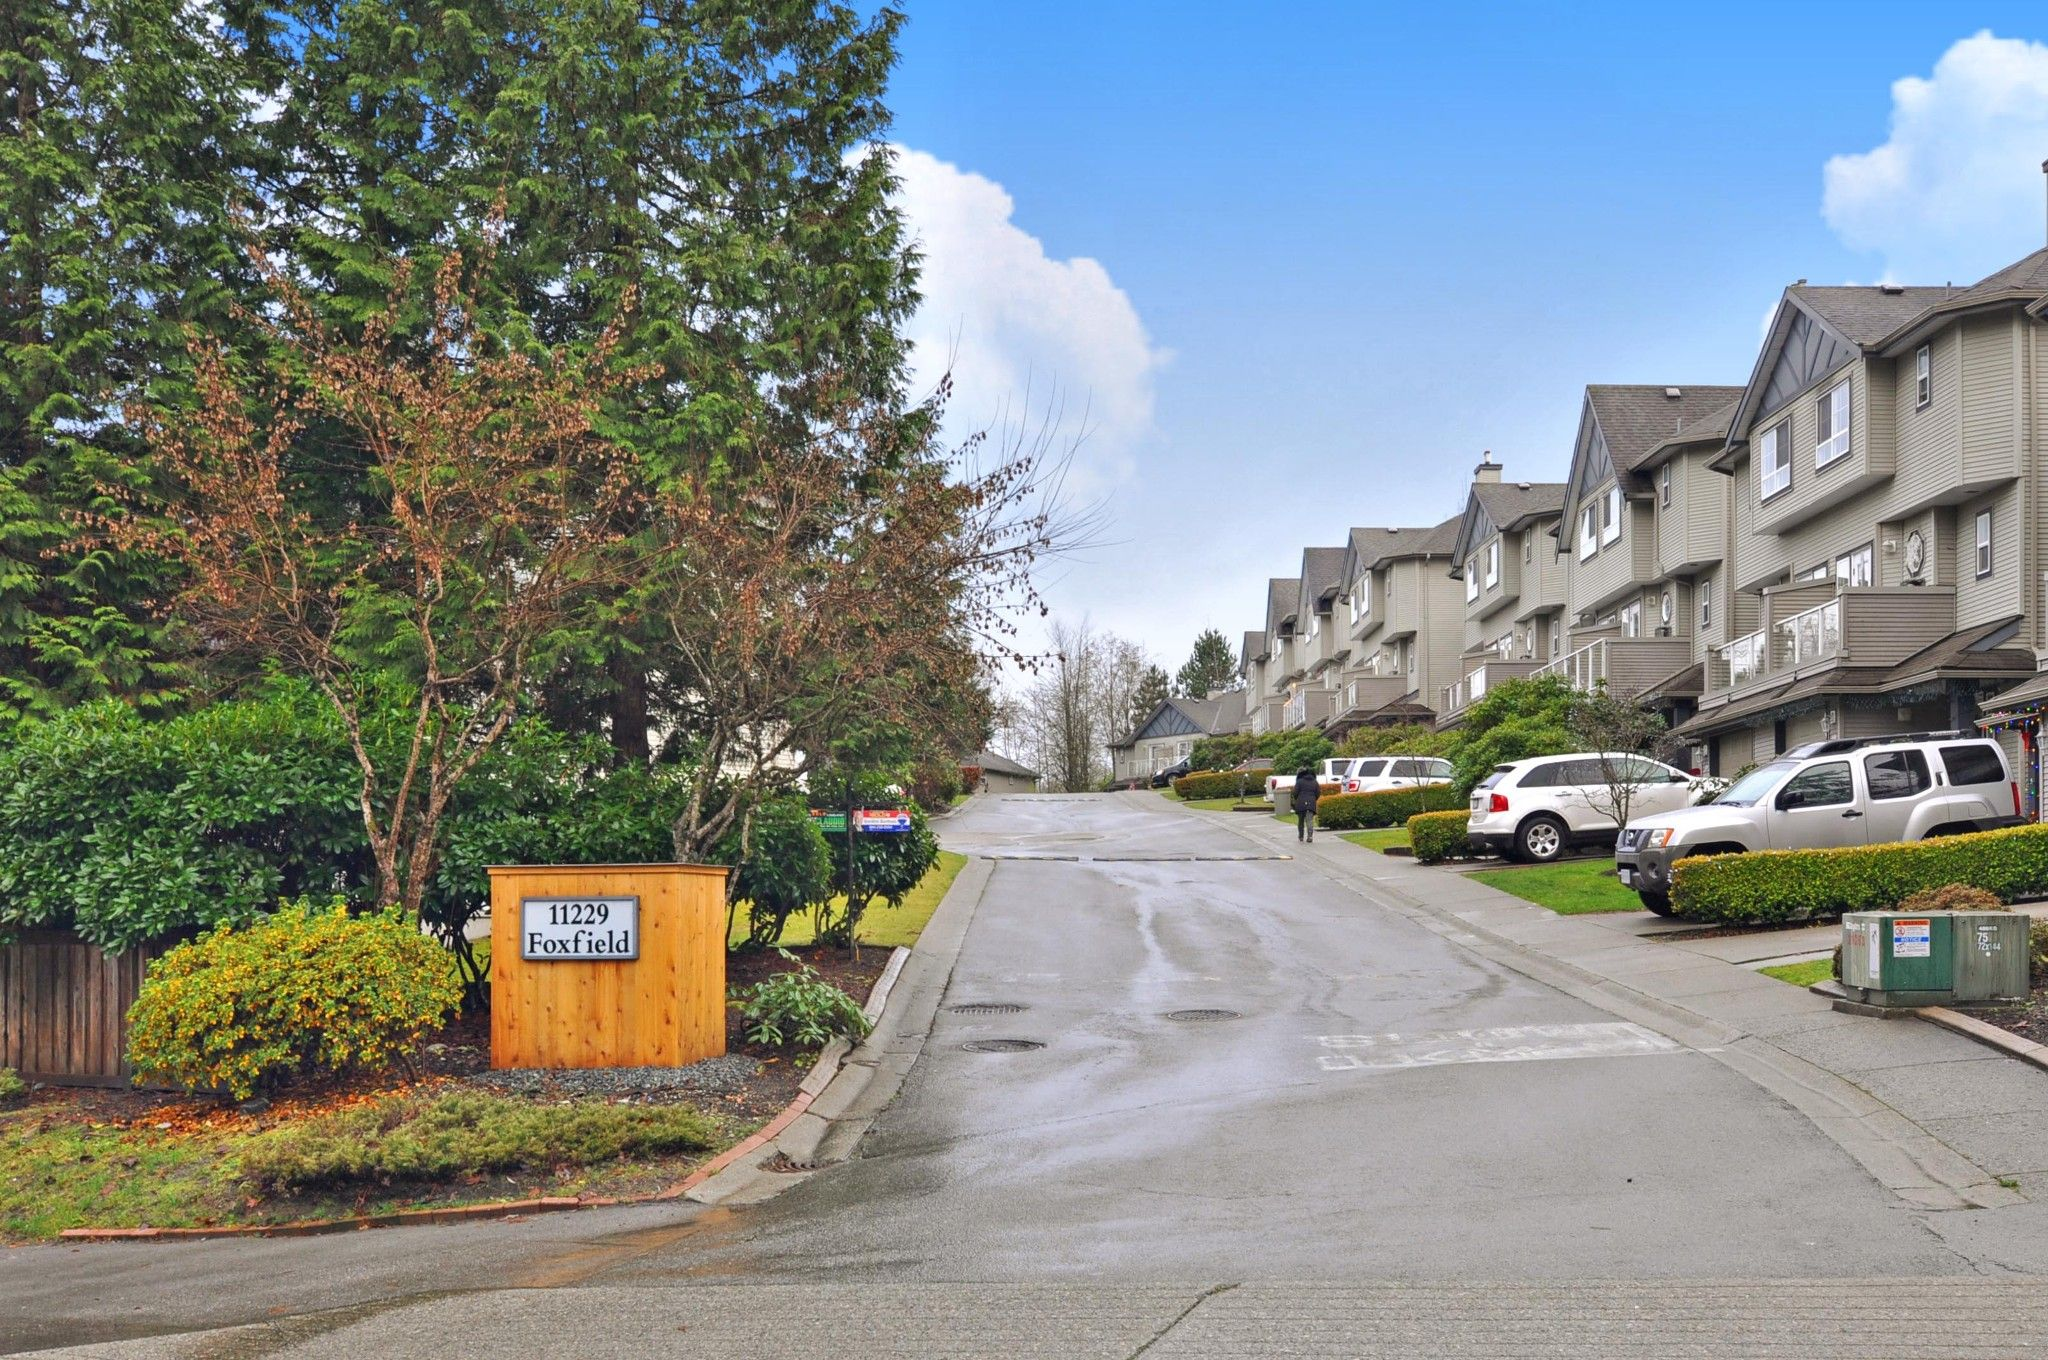 "Main Photo: 45 11229 232 Street in Maple Ridge: East Central Townhouse for sale in ""Foxfield"" : MLS®# R2523761"